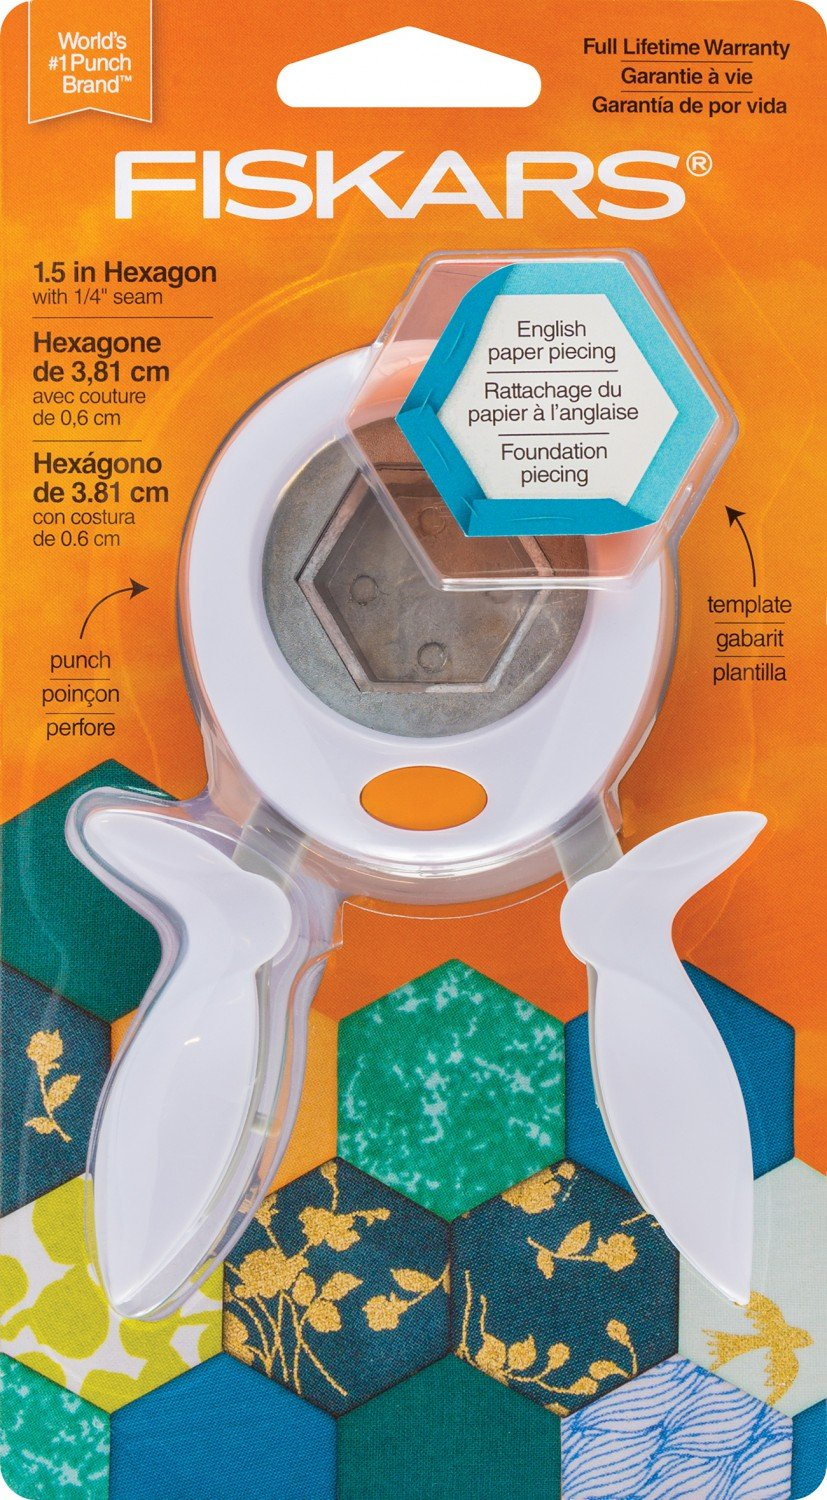 Fiskars 1.5 Hexagon Punch and Template